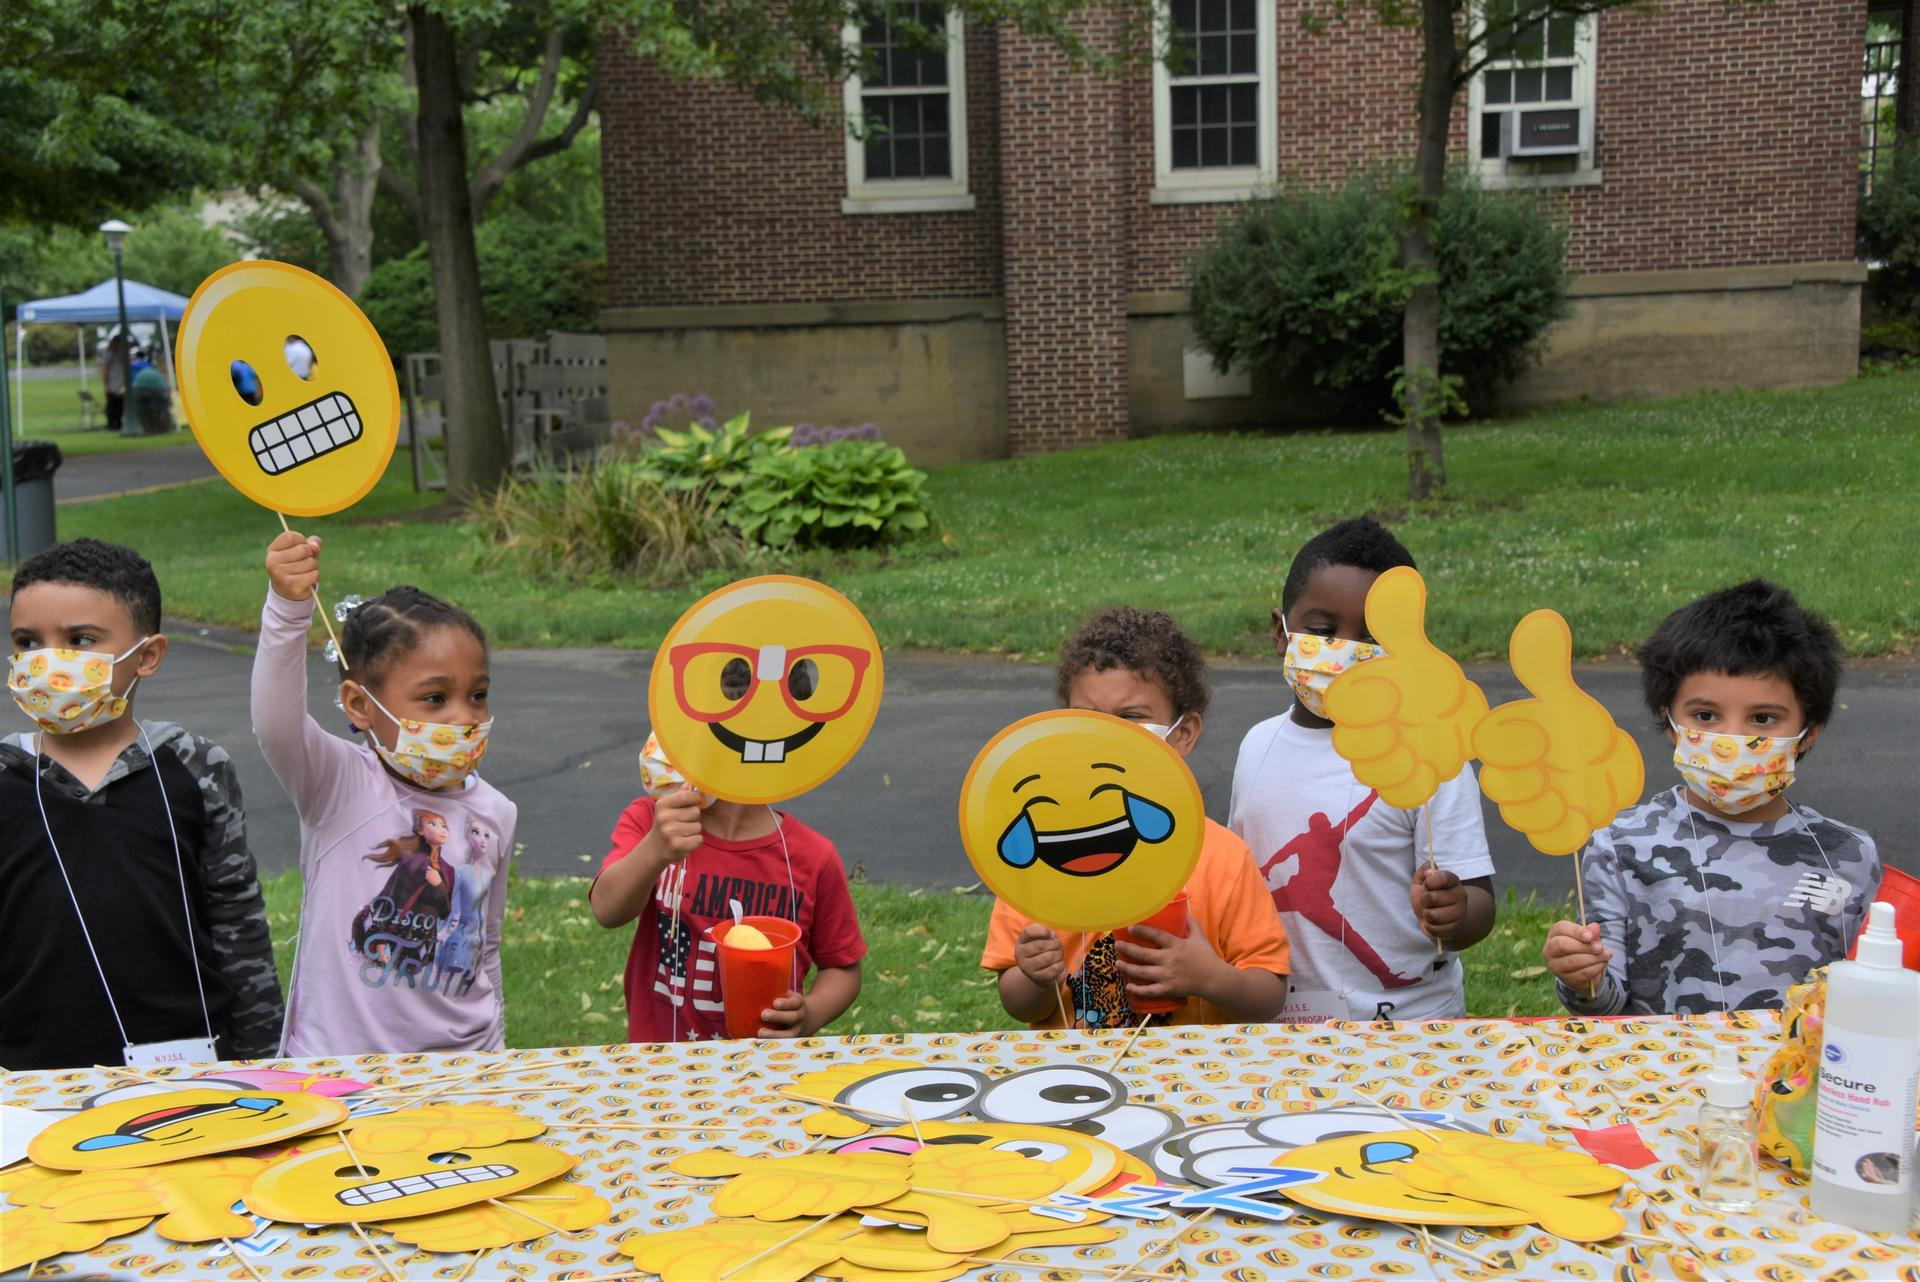 A class is holding up emoji signs at a photobooth table